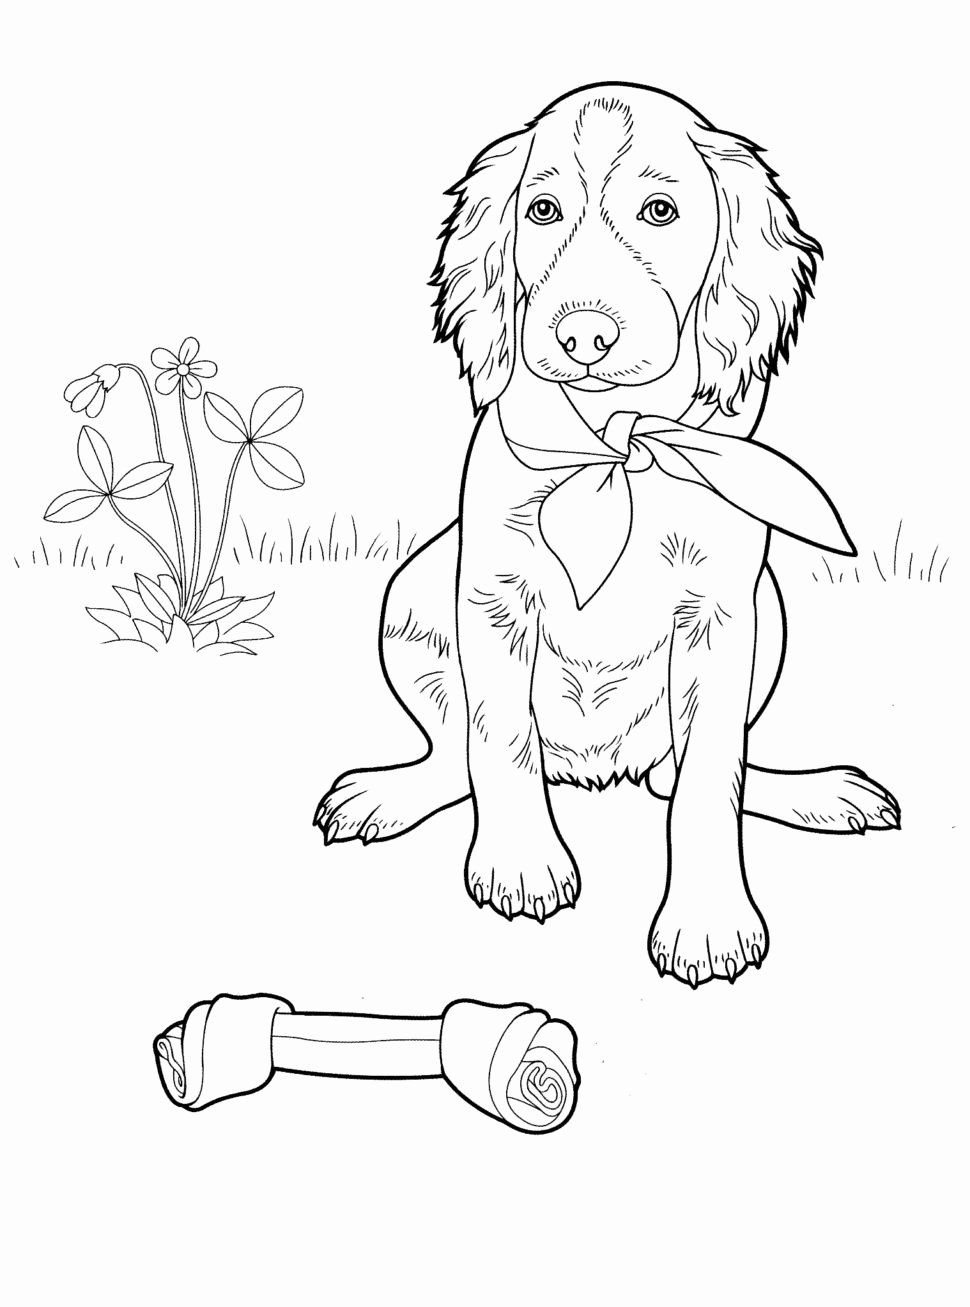 Cool Coloring Pages for Tweens Elegant Coloring Pages Dog ...